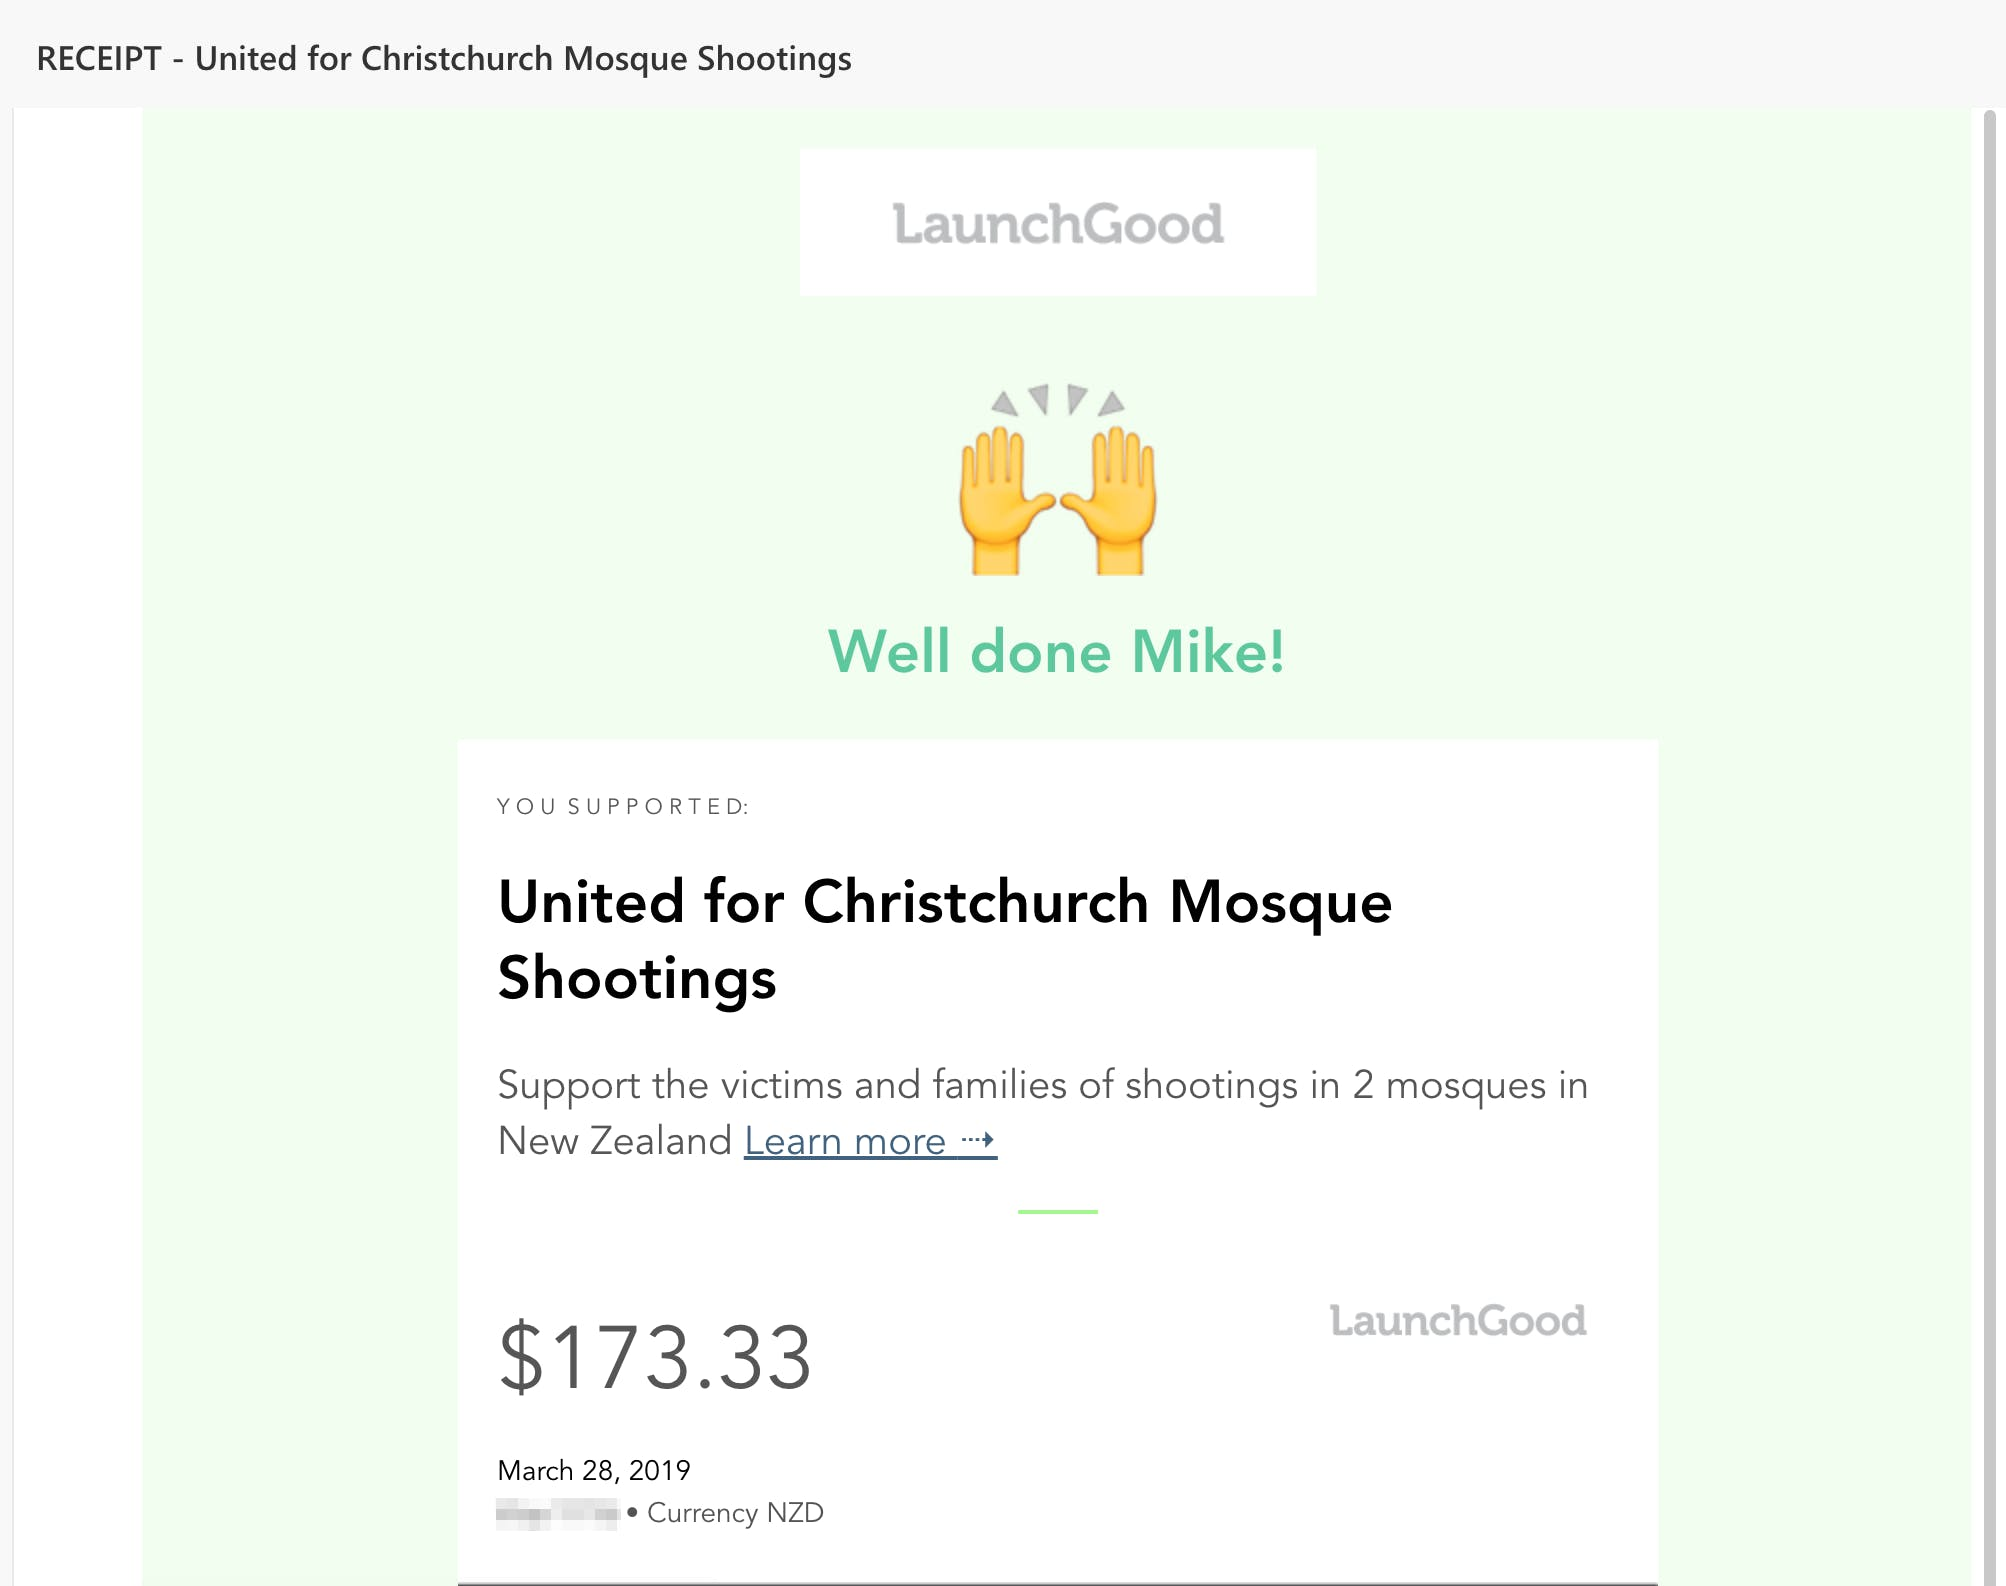 Screenshot of a donation to the Cristchurch Mosque charity for $173.33 USD